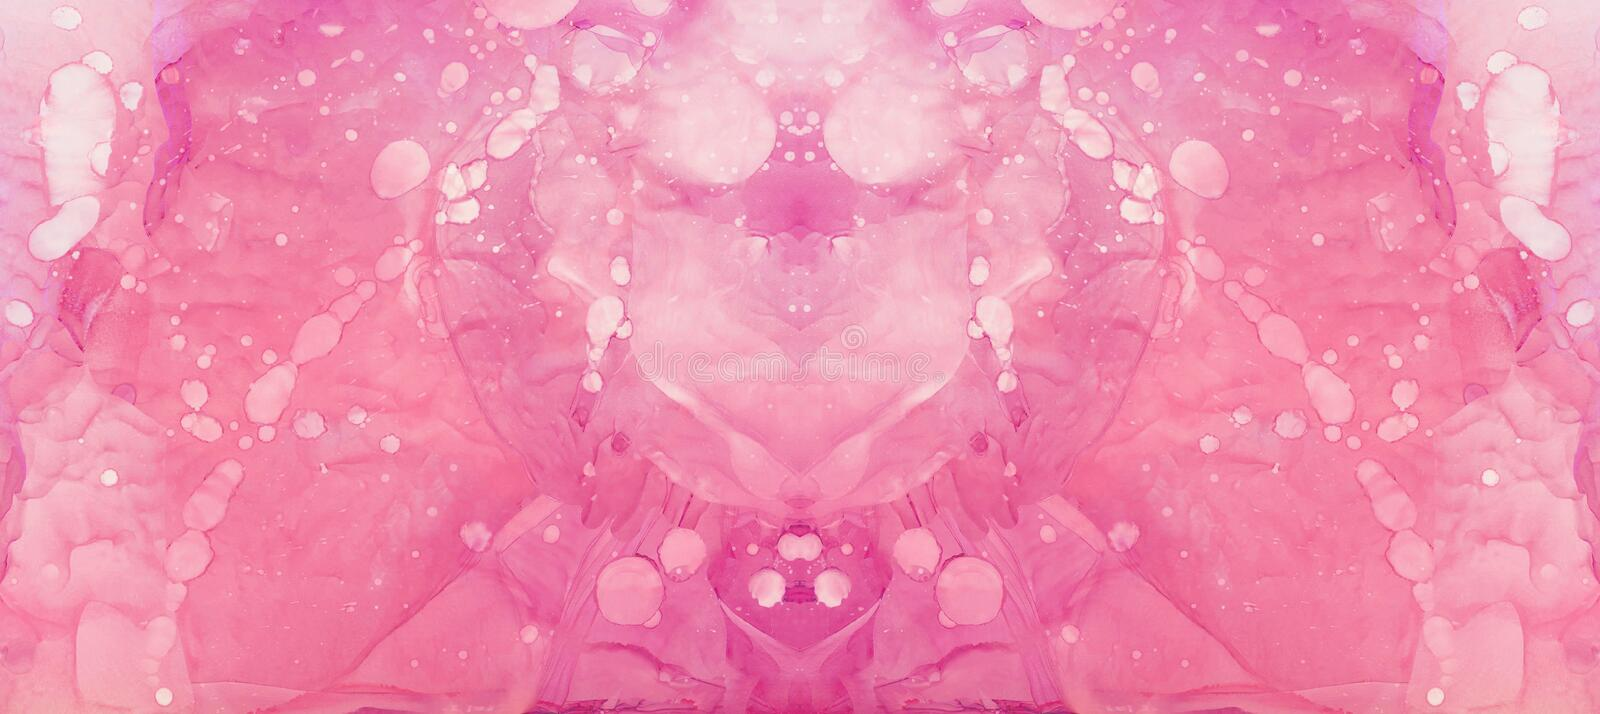 Smudged soft light pink alcohol ink abstract background. Flow liquid watercolor paint splash texture effect illustration for cards. Smudged soft light pink royalty free stock photography